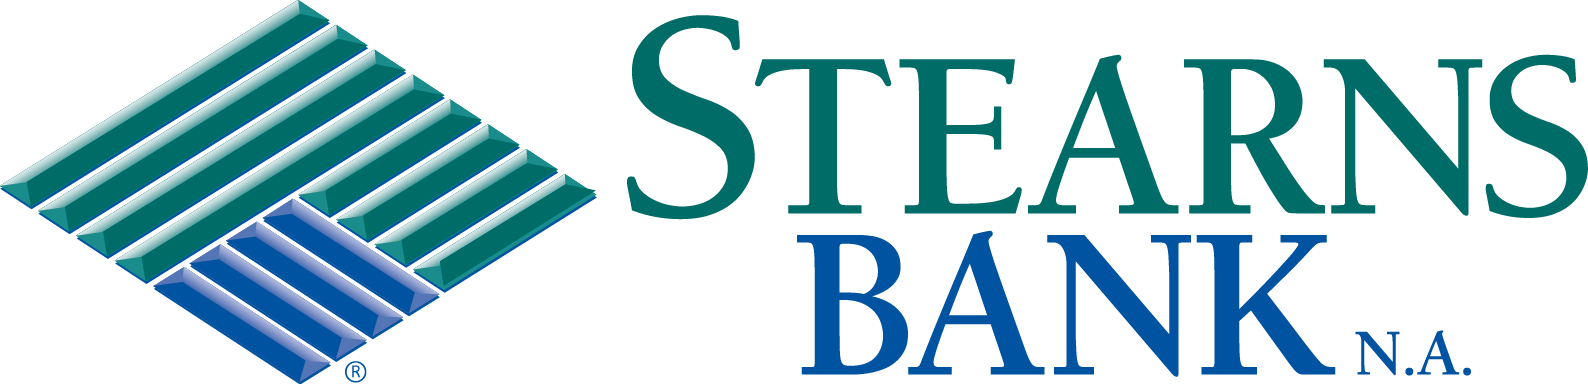 Stearns Bank.png